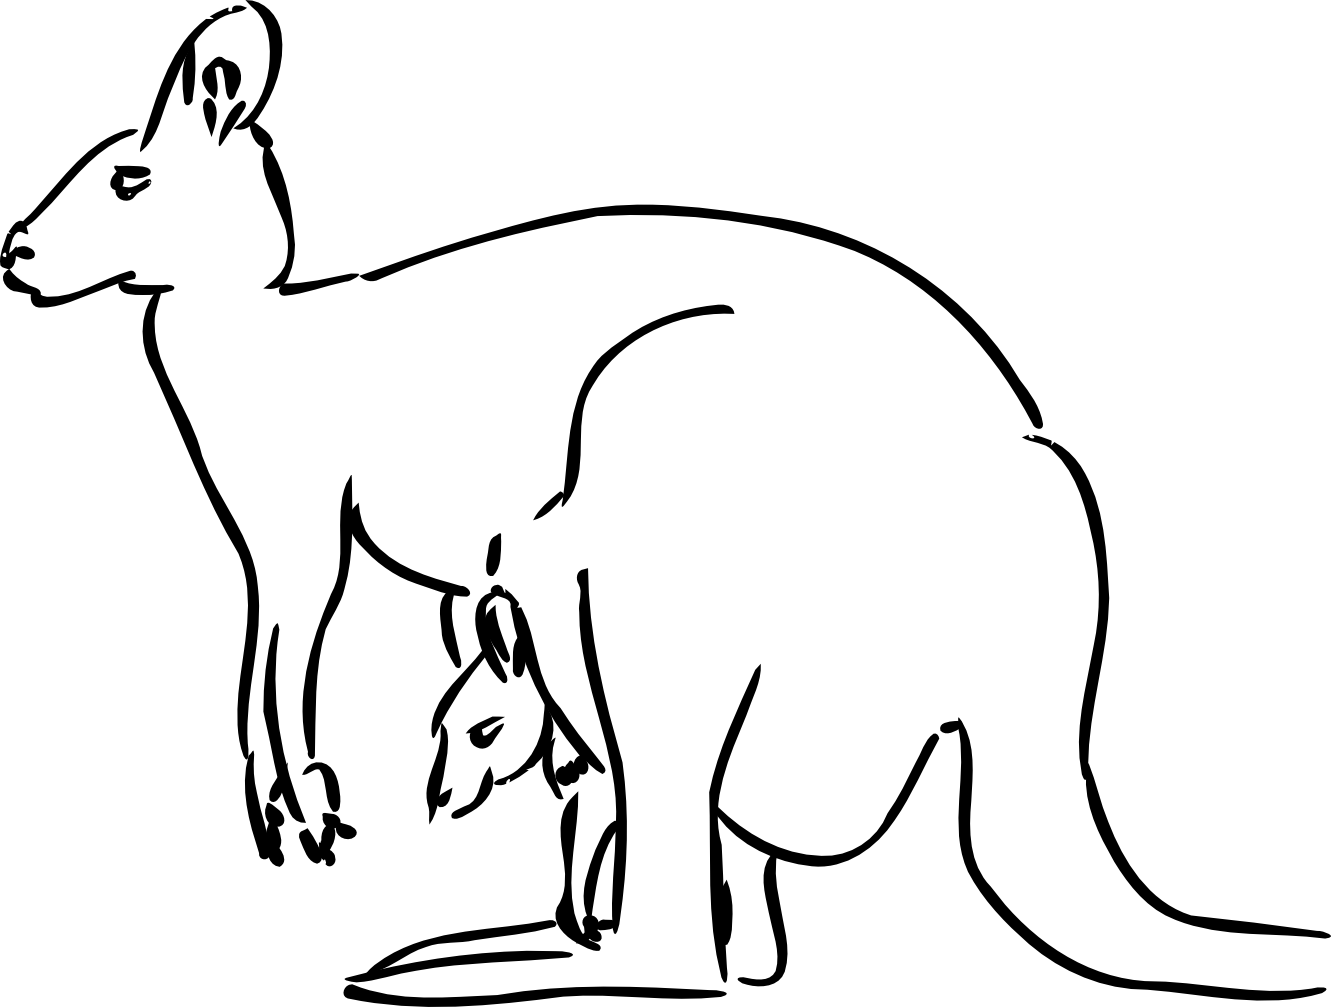 Kangaroo Clipart Black And White.